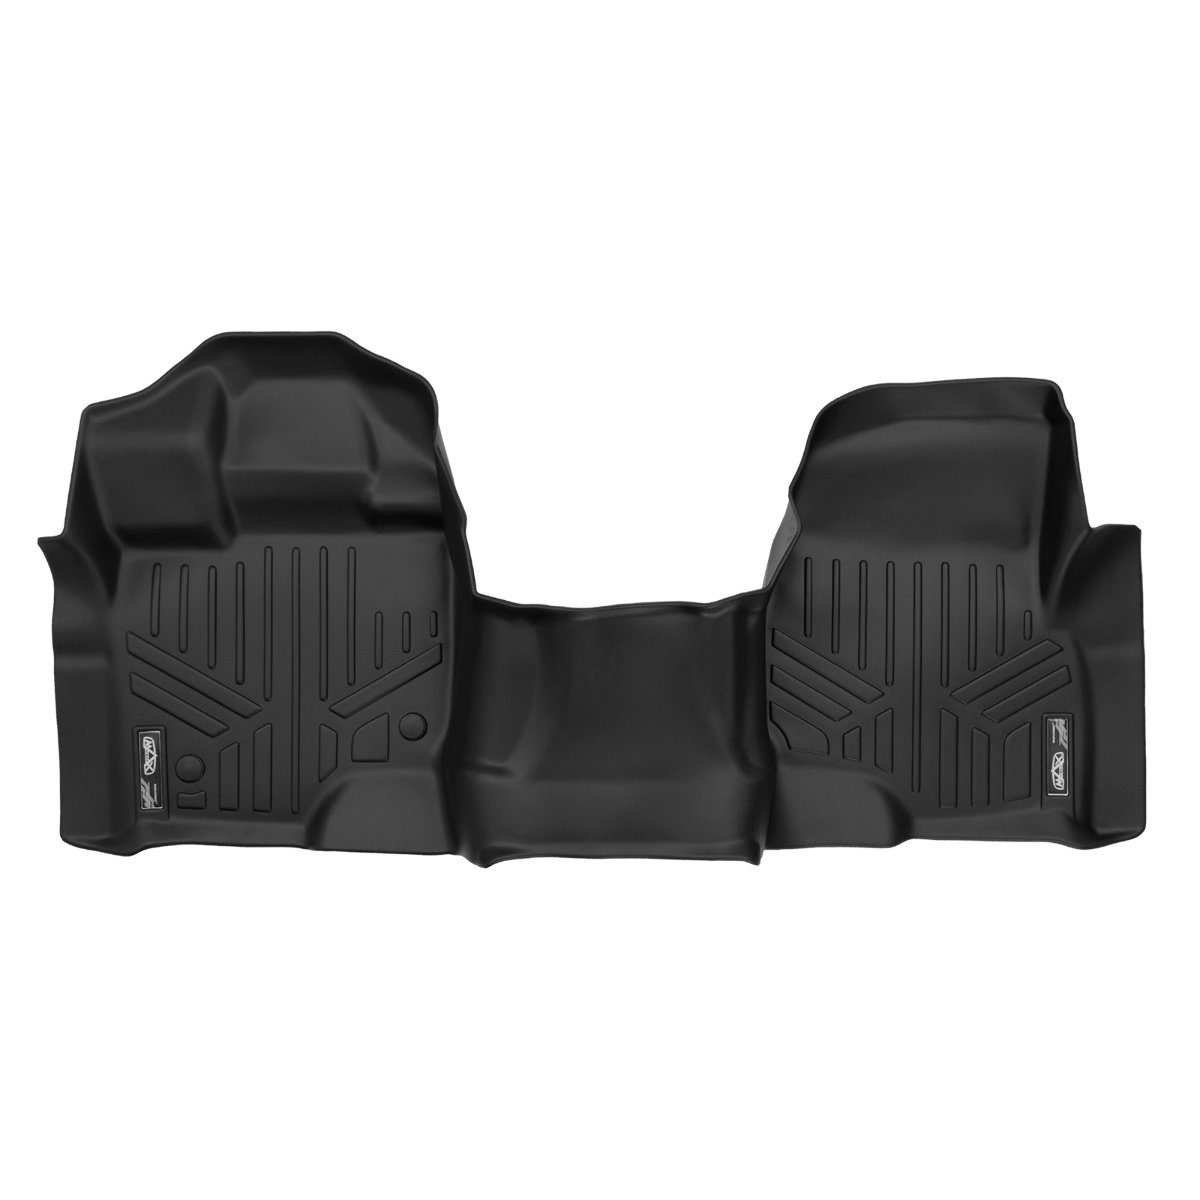 MAXFLOORMAT Floor Mats for Ford F-150 SuperCab/SuperCrew with Front Bench Seat (2015-2017) First Row One Piece (Black) MAXLINER A0212